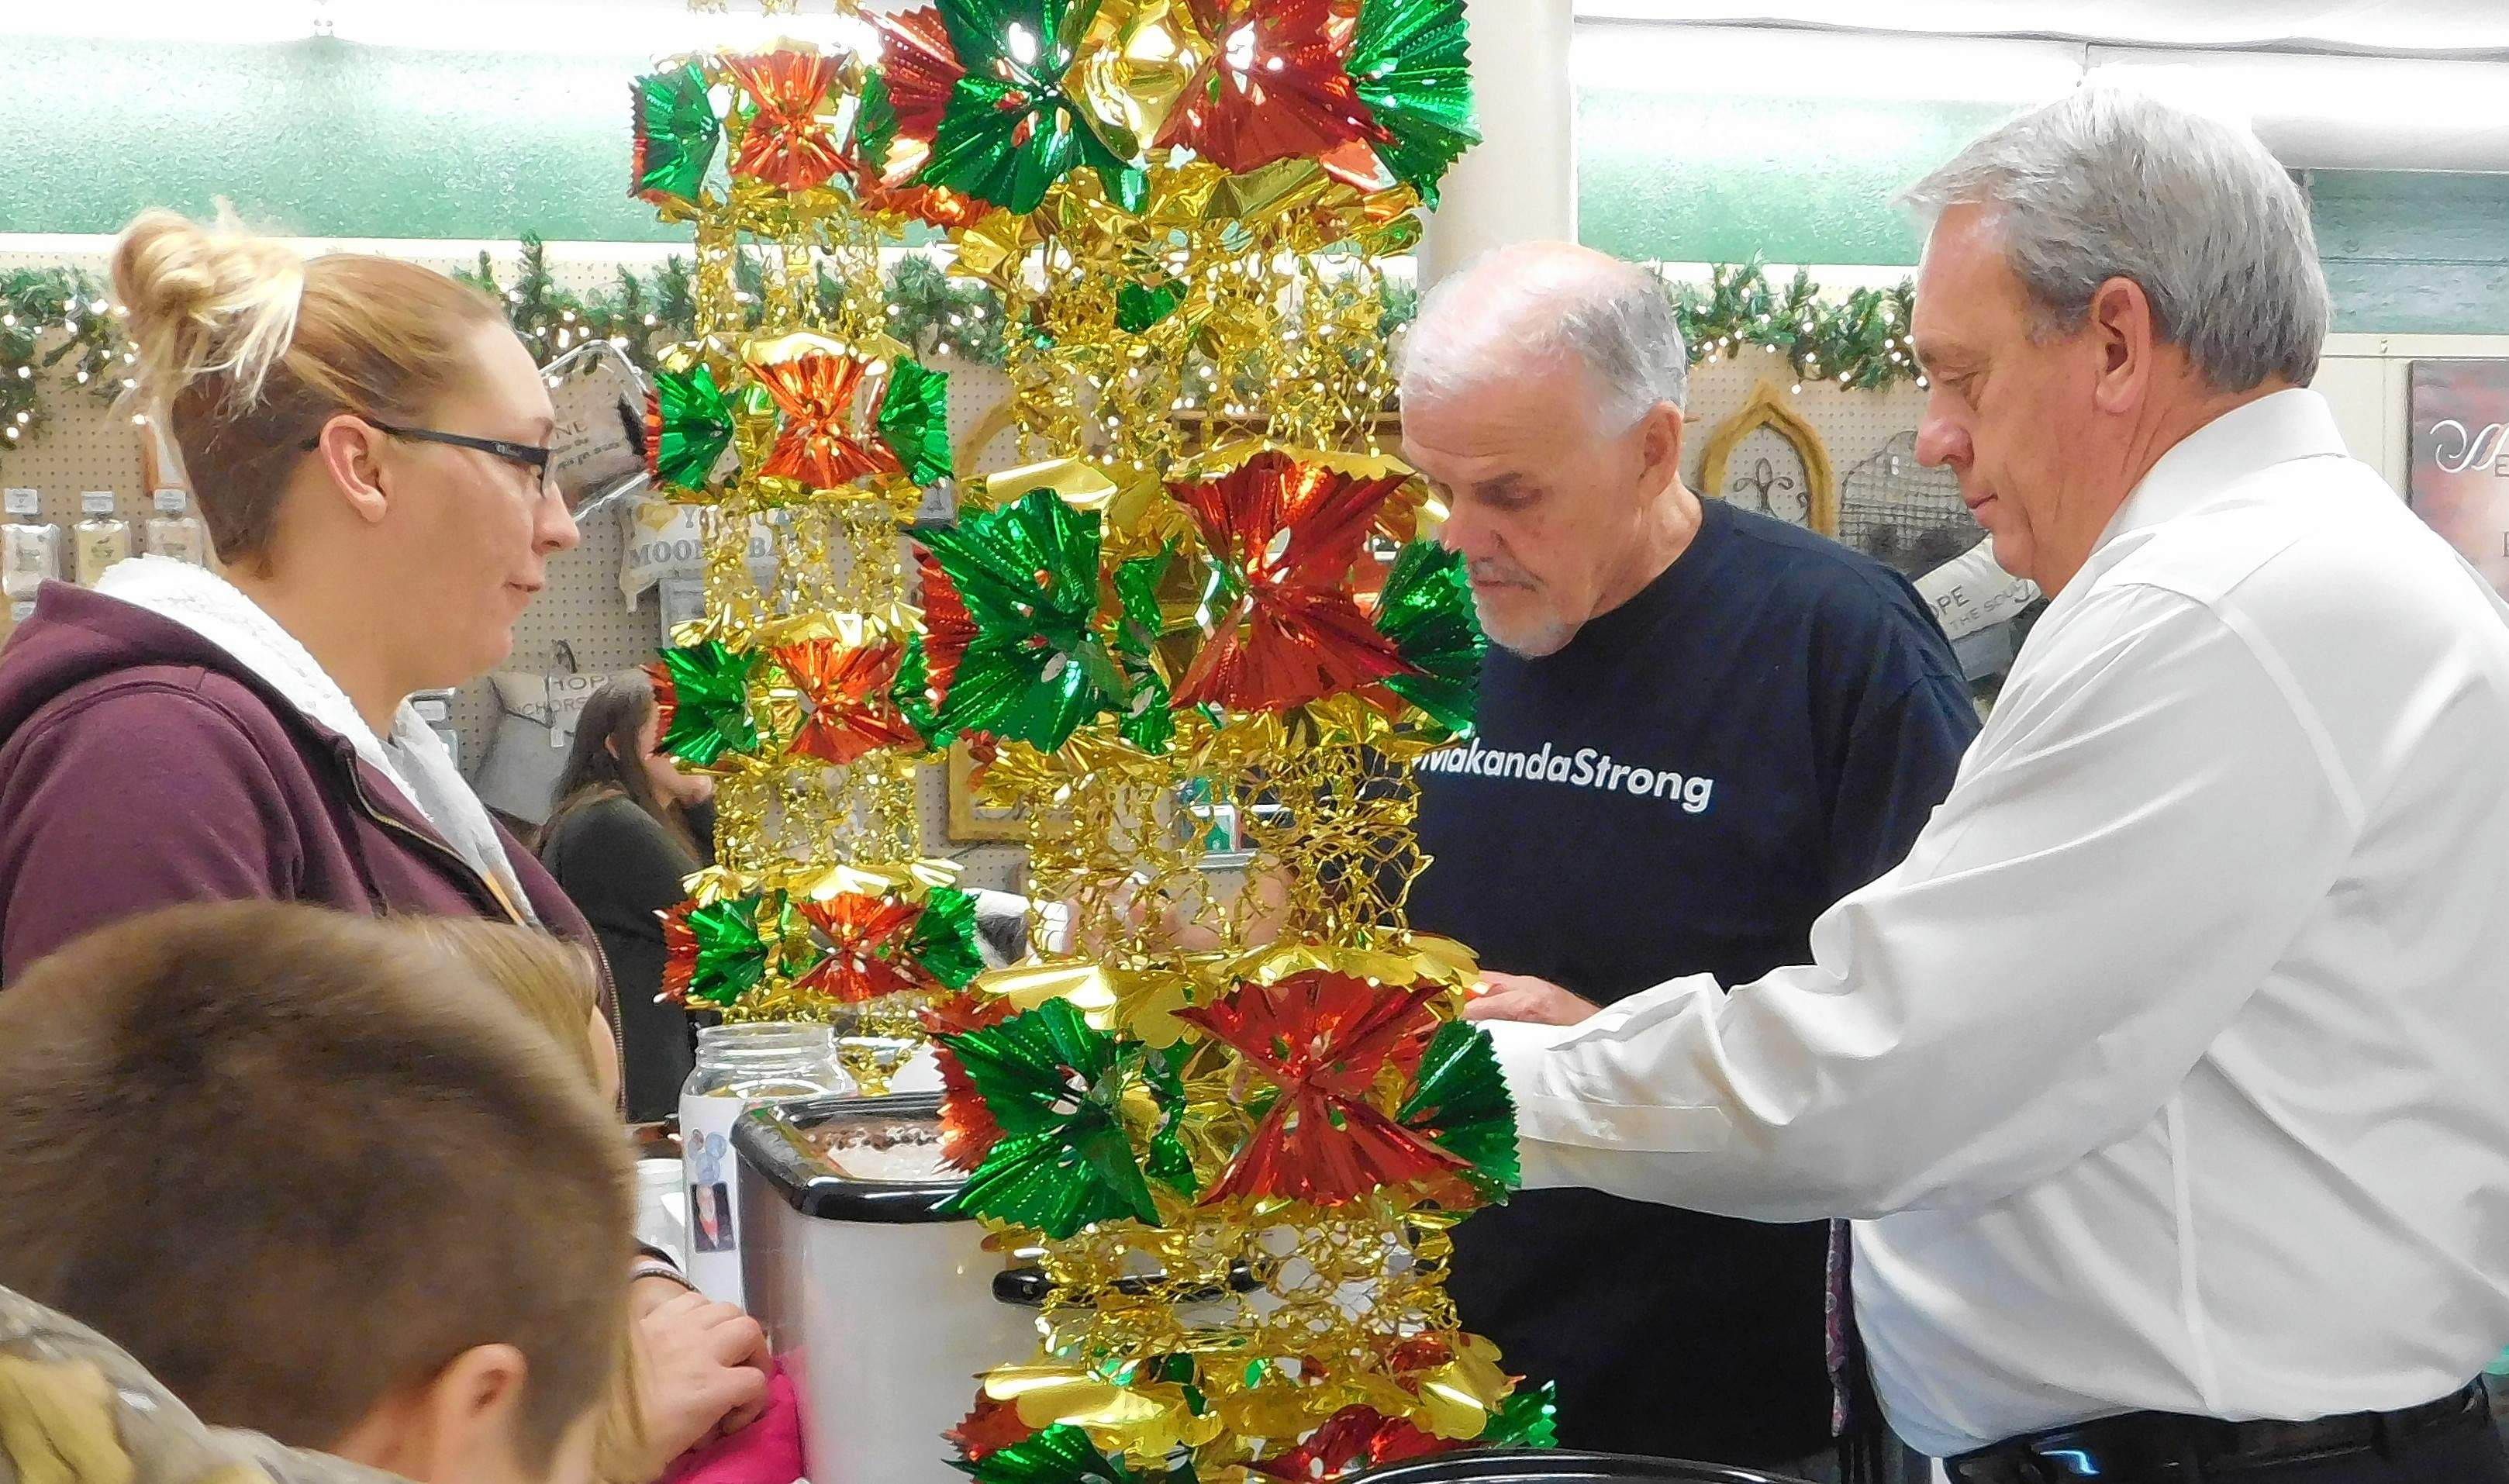 Sarah Carlton (left) speaks with Franklin County Circuit Clerk Jim Muir and Sen. Dale Fowler (R-Harrisburg) Friday evening during the Miracle for Makanda event at Edwards Antiques. The event was held to support Carlton's daughter, Makanda Williams, to aid in funding medical treatment for a rare brain tumor. Fowler and Muir volunteered to serve hot chocolate and cider during the event.